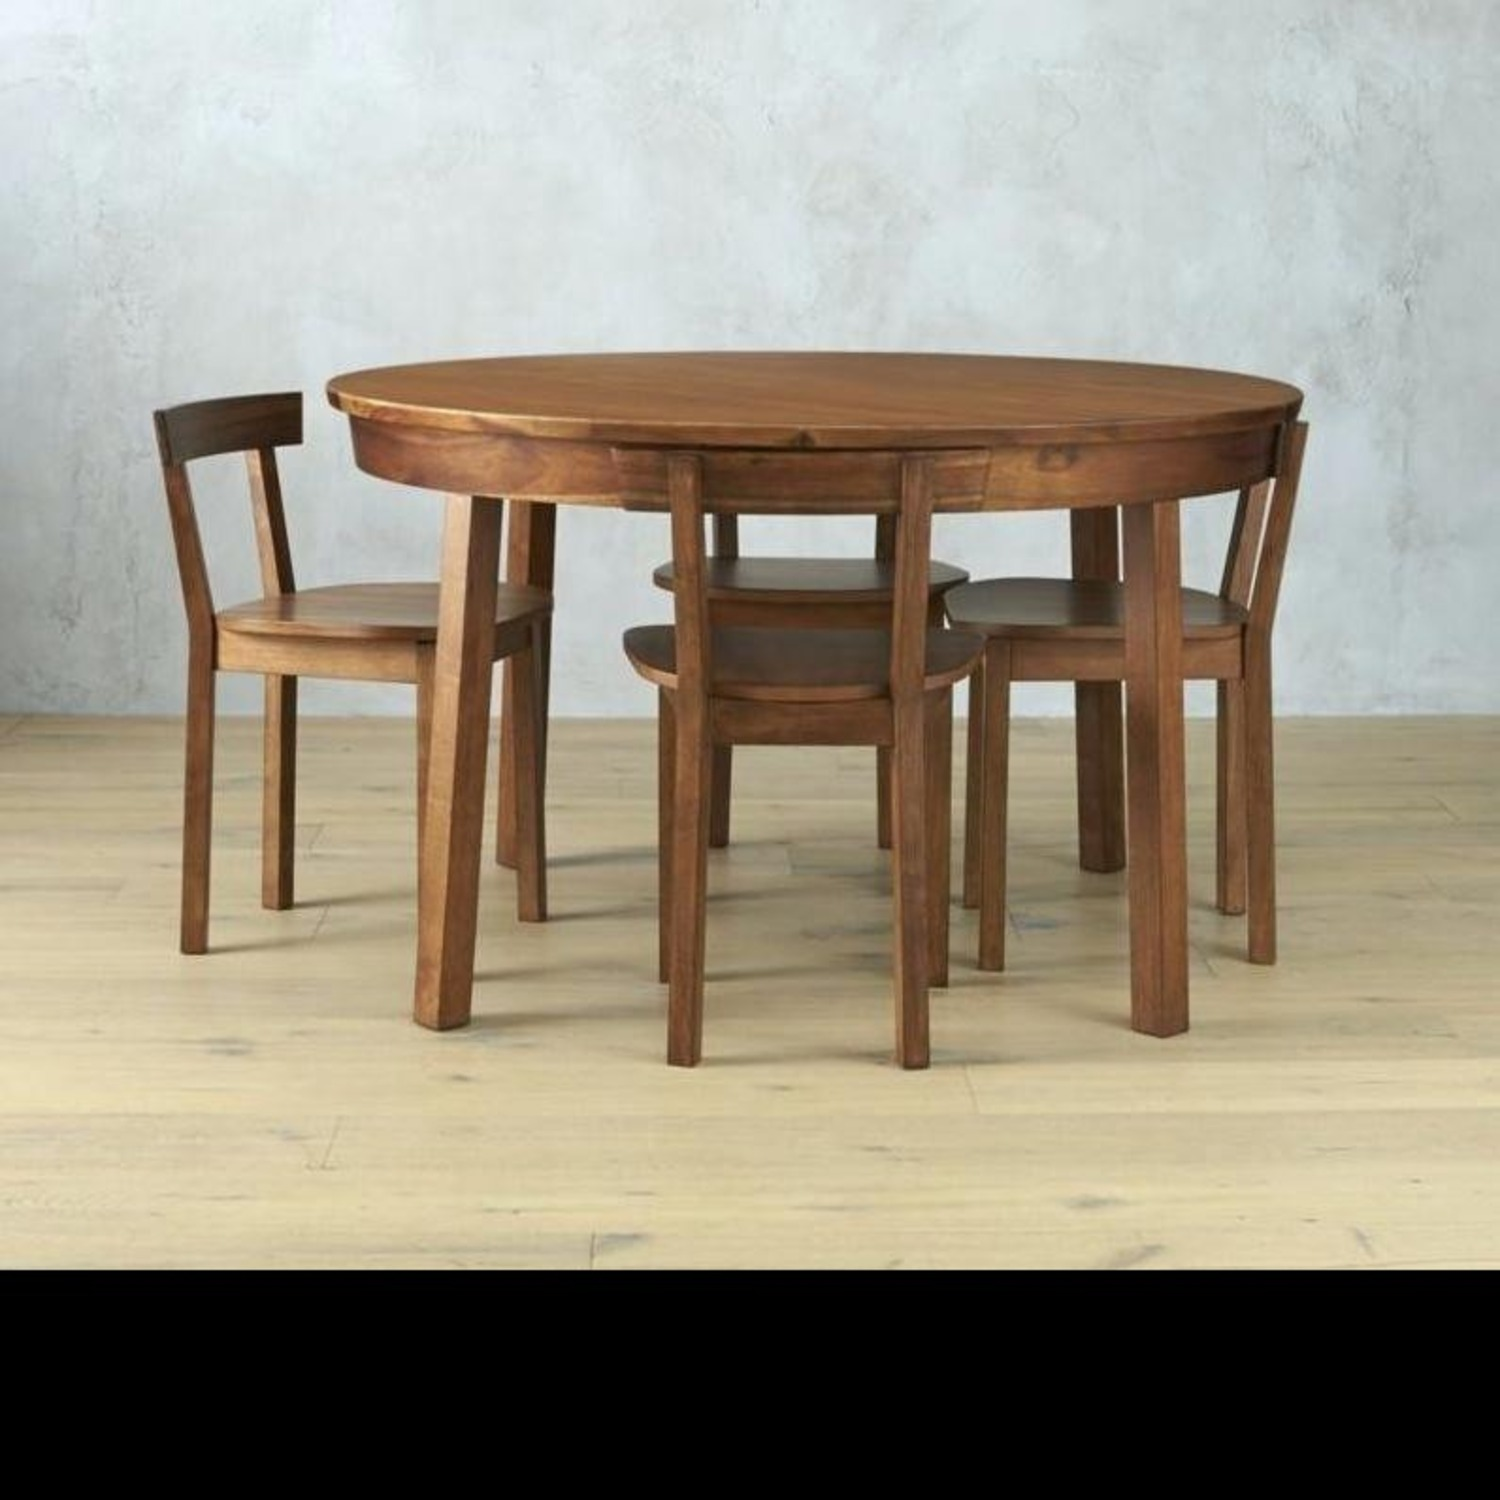 CB2 Round Dining Table w/ 4 Inlaid Chairs - image-2